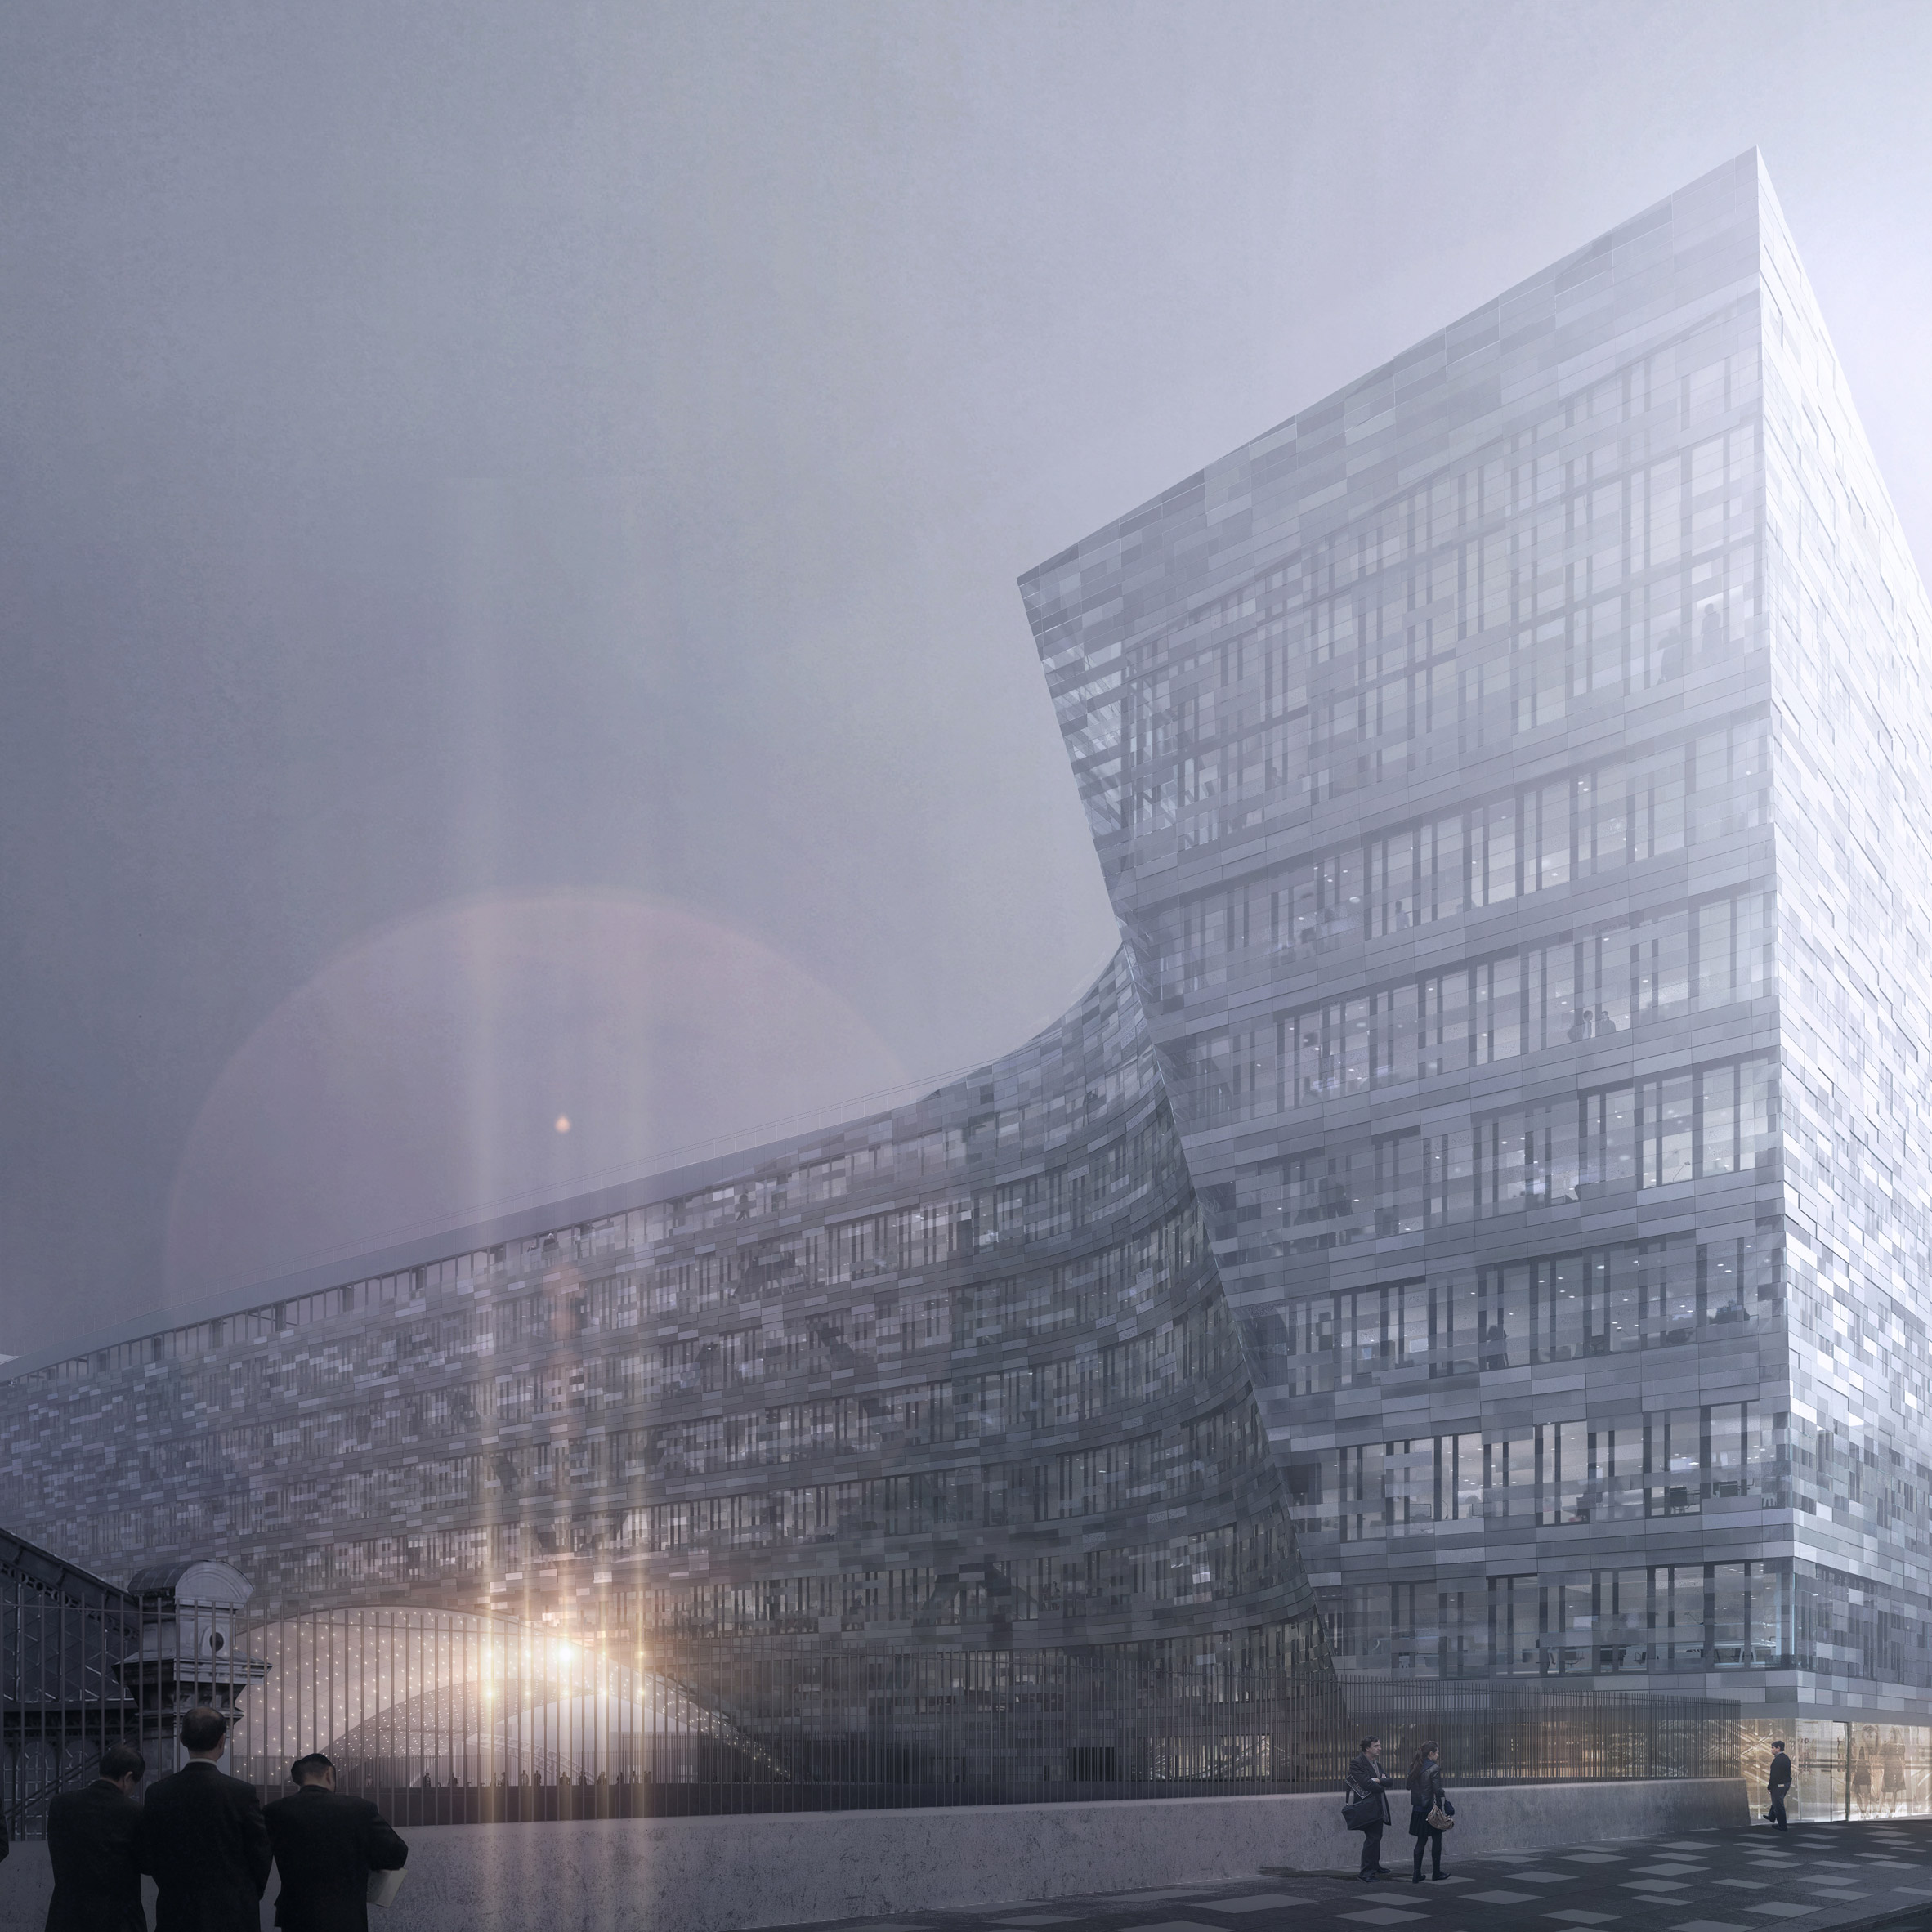 12 new buildings to look forward to in 2020: Le Monde by Snøhetta